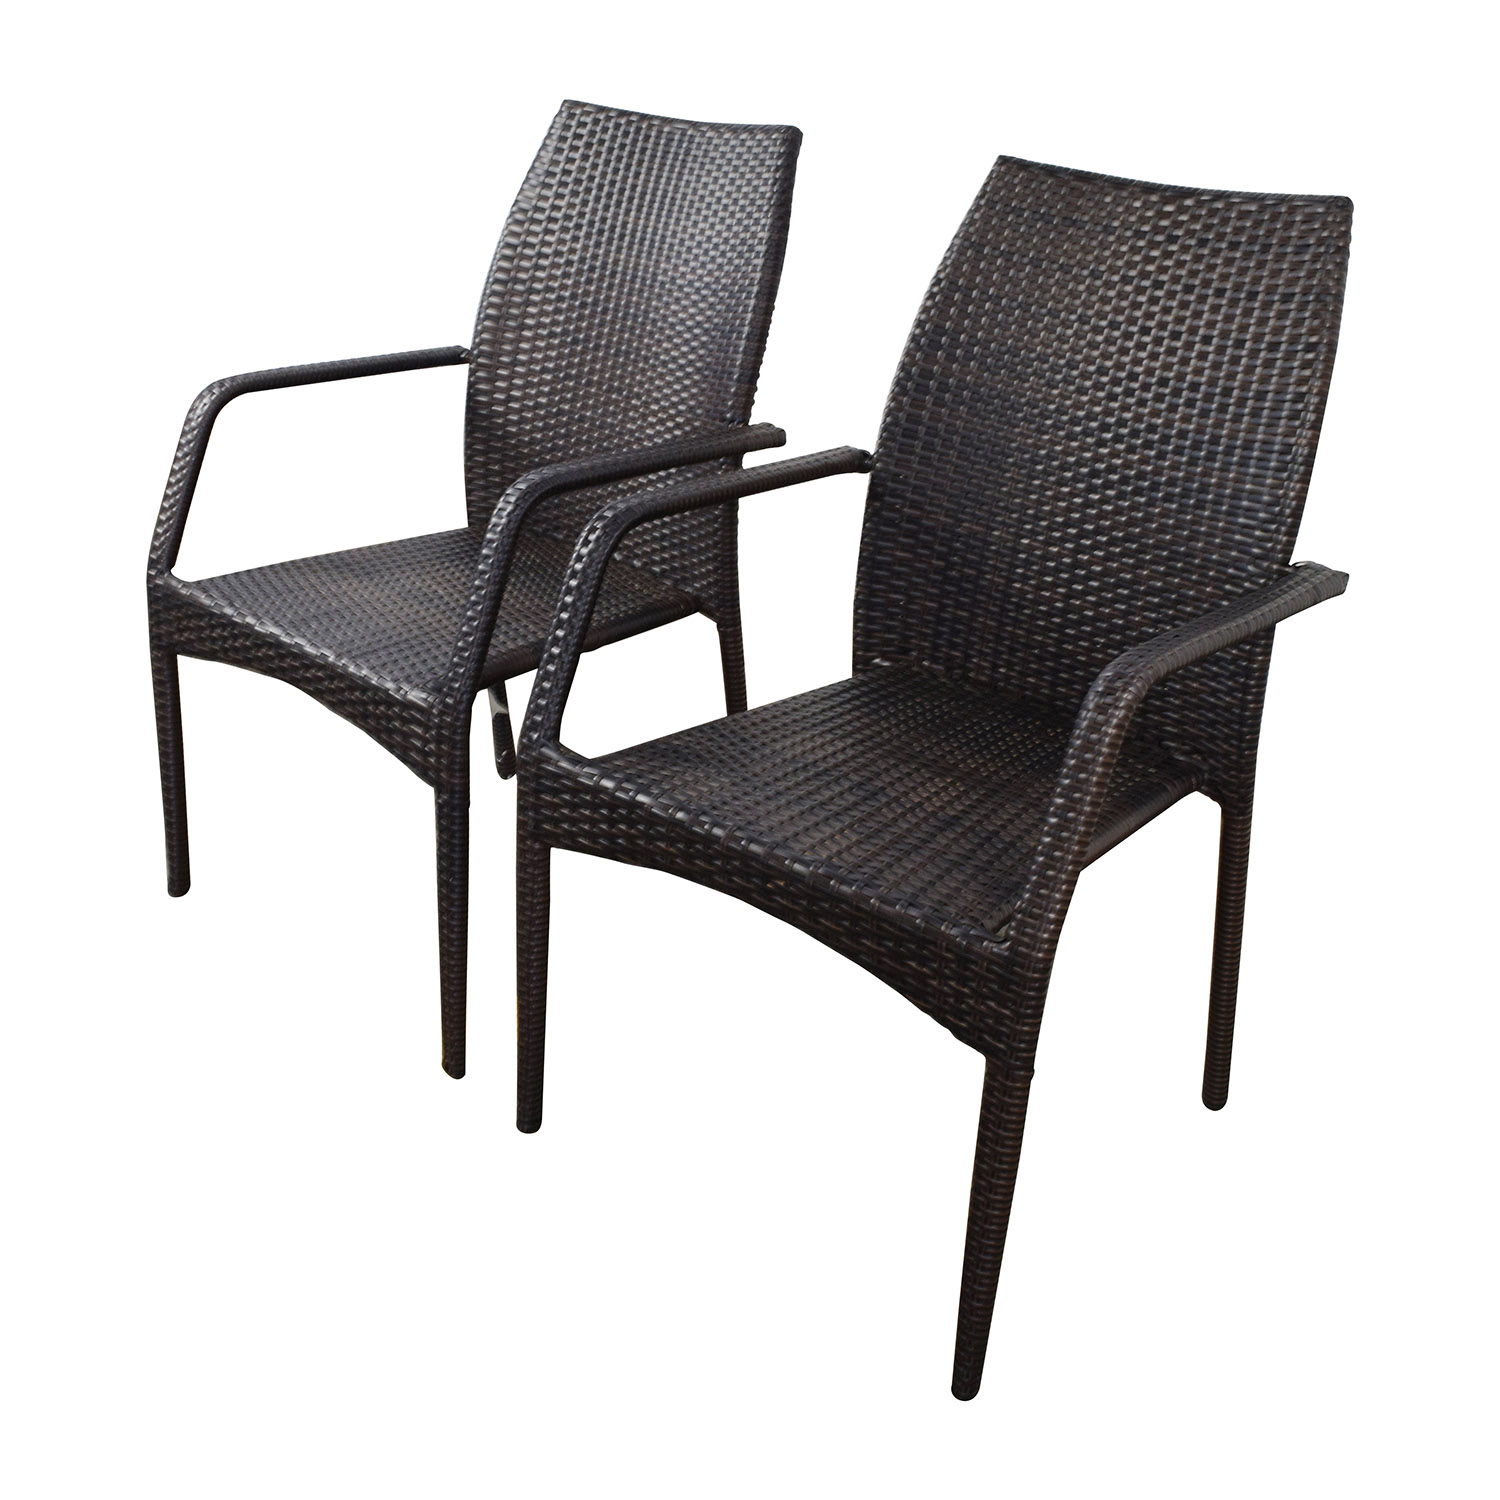 85 OFF  Dark Brown Wicker Outdoor Dining Chairs  Chairs